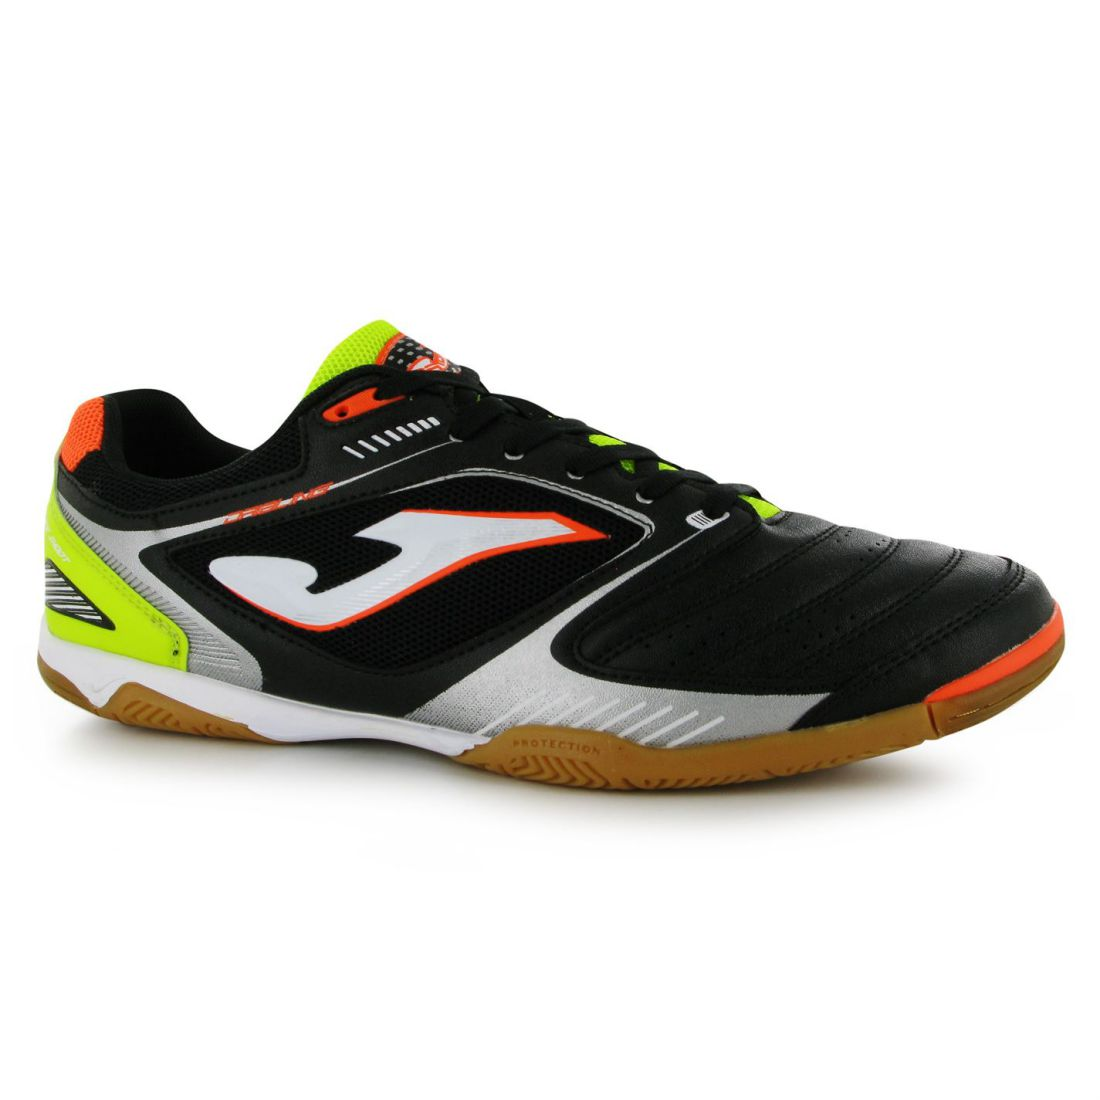 f69d15d9ef Joma Mens Gents Dribbling Indoor Football Boots Sneakers Shoes ...